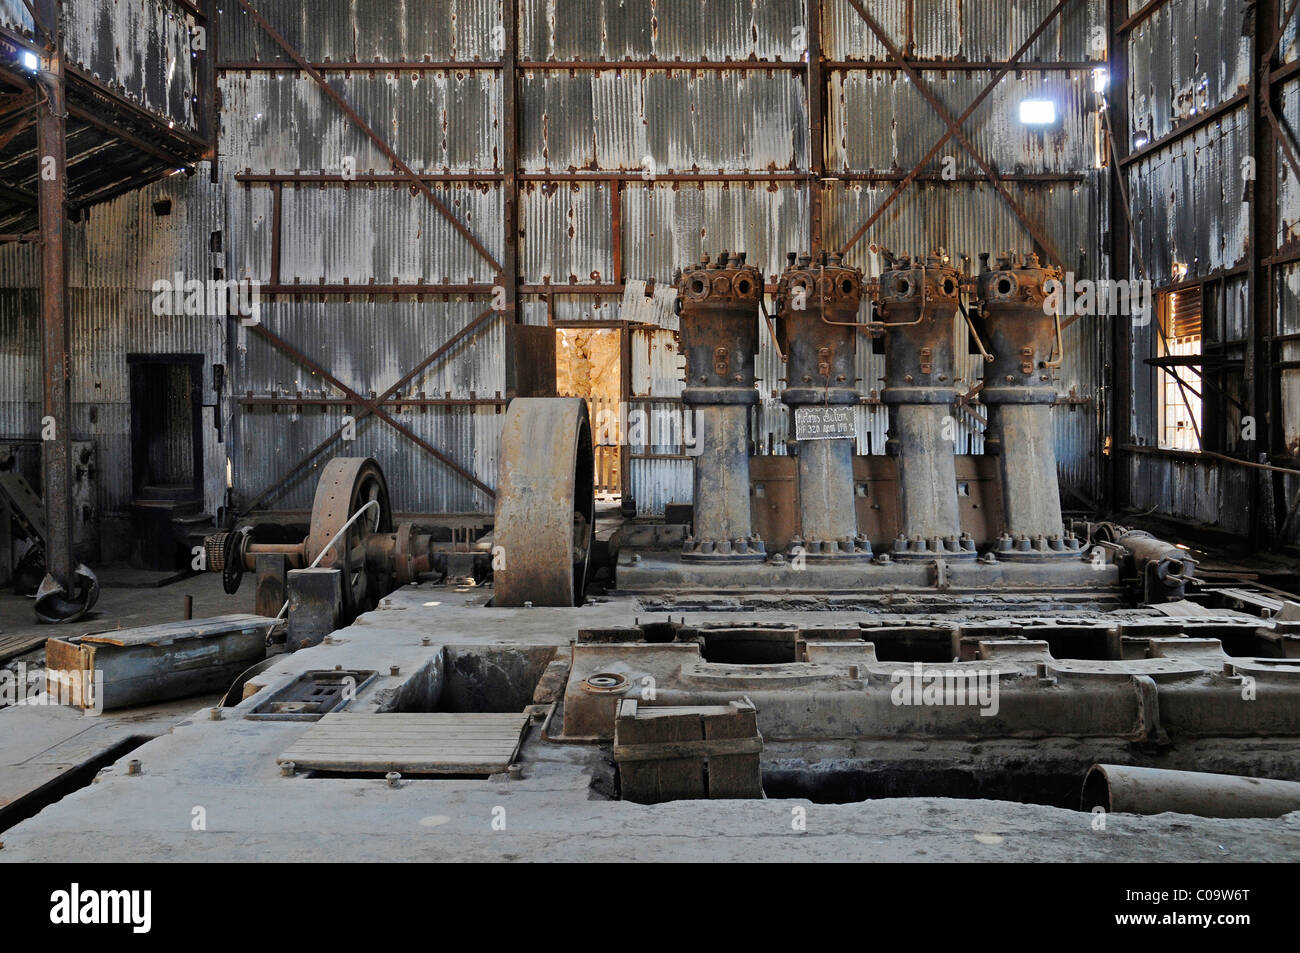 Factory buildings, industrial facilities, saltpeter works, abandoned salpeter town, ghost town, museum - Stock Image